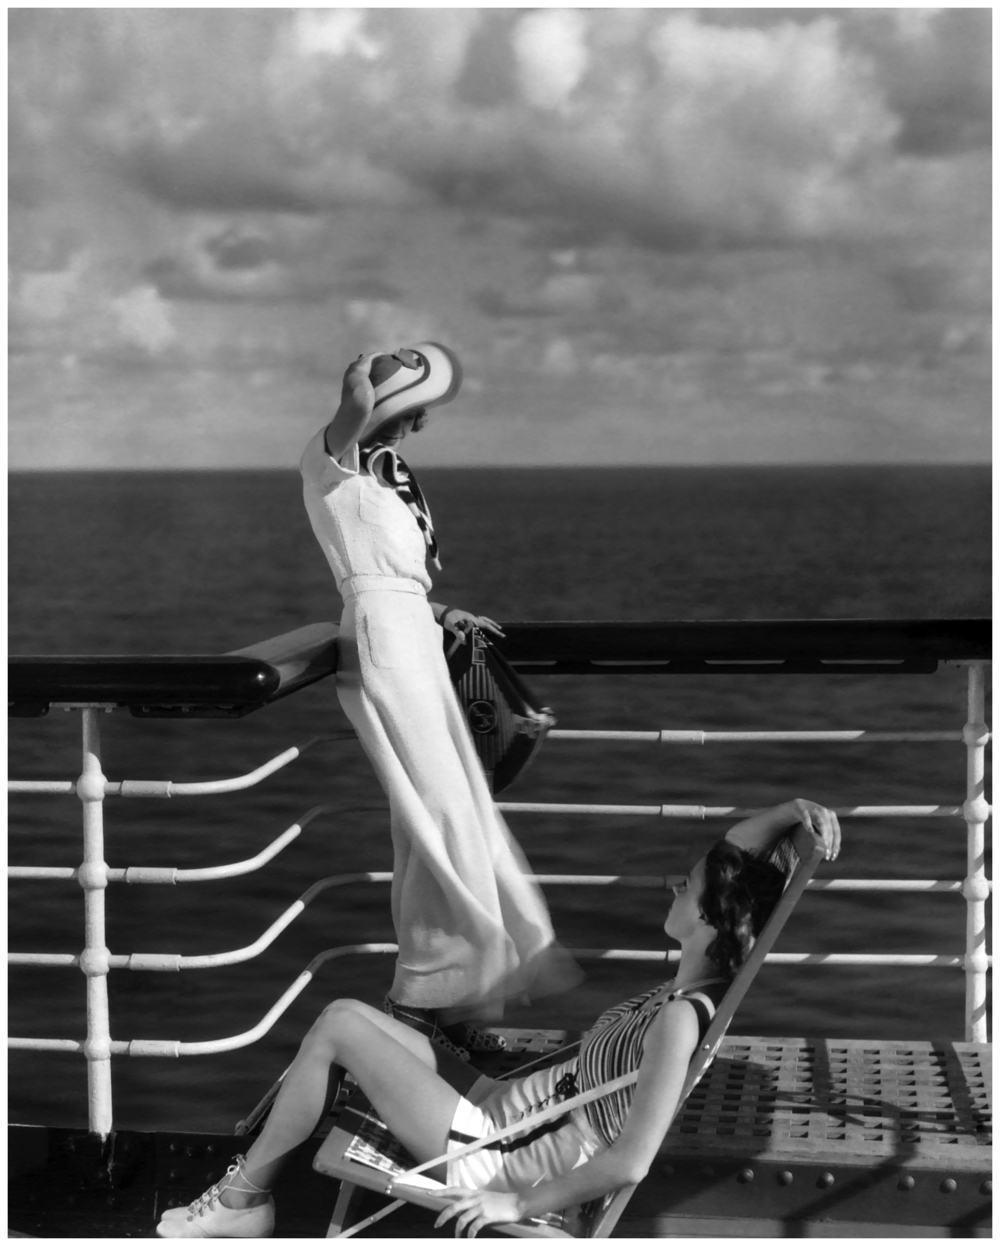 Bound for Hawaii, Edward Steichen photographs two models on the deck of the cruise ship liner Lurline, 1934 via